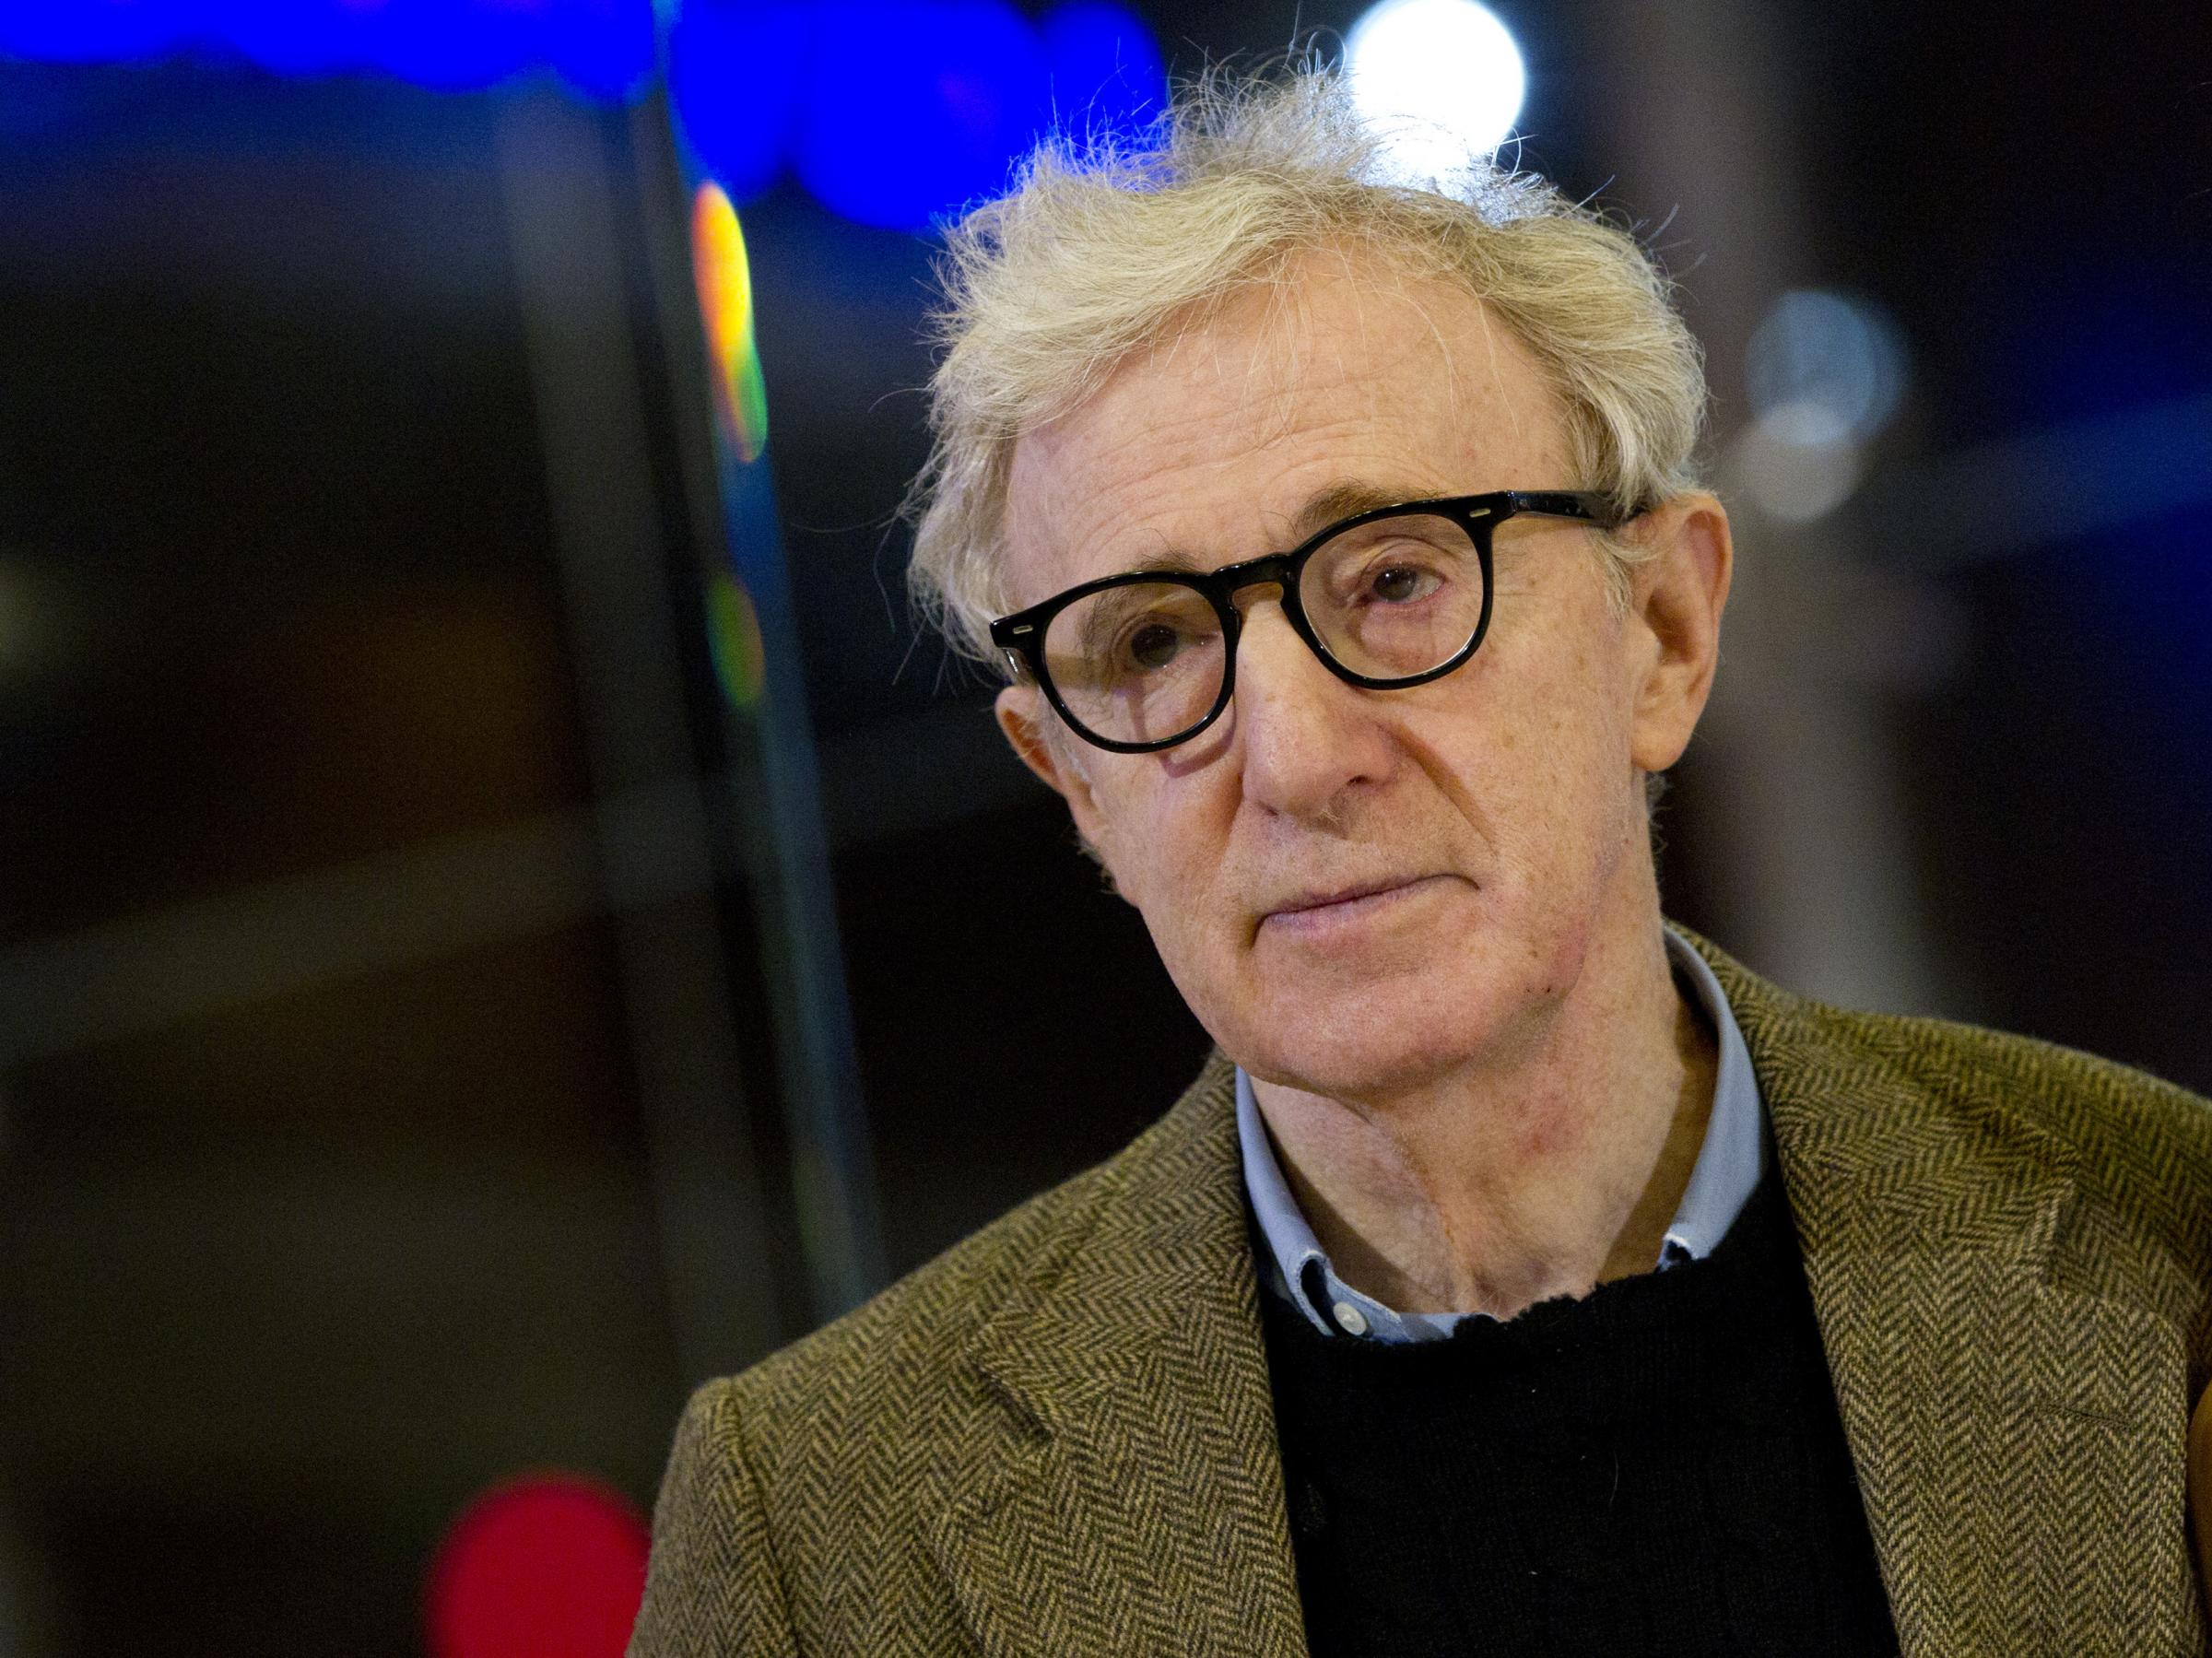 Woody Allen Ethnicity, Race, and Nationality